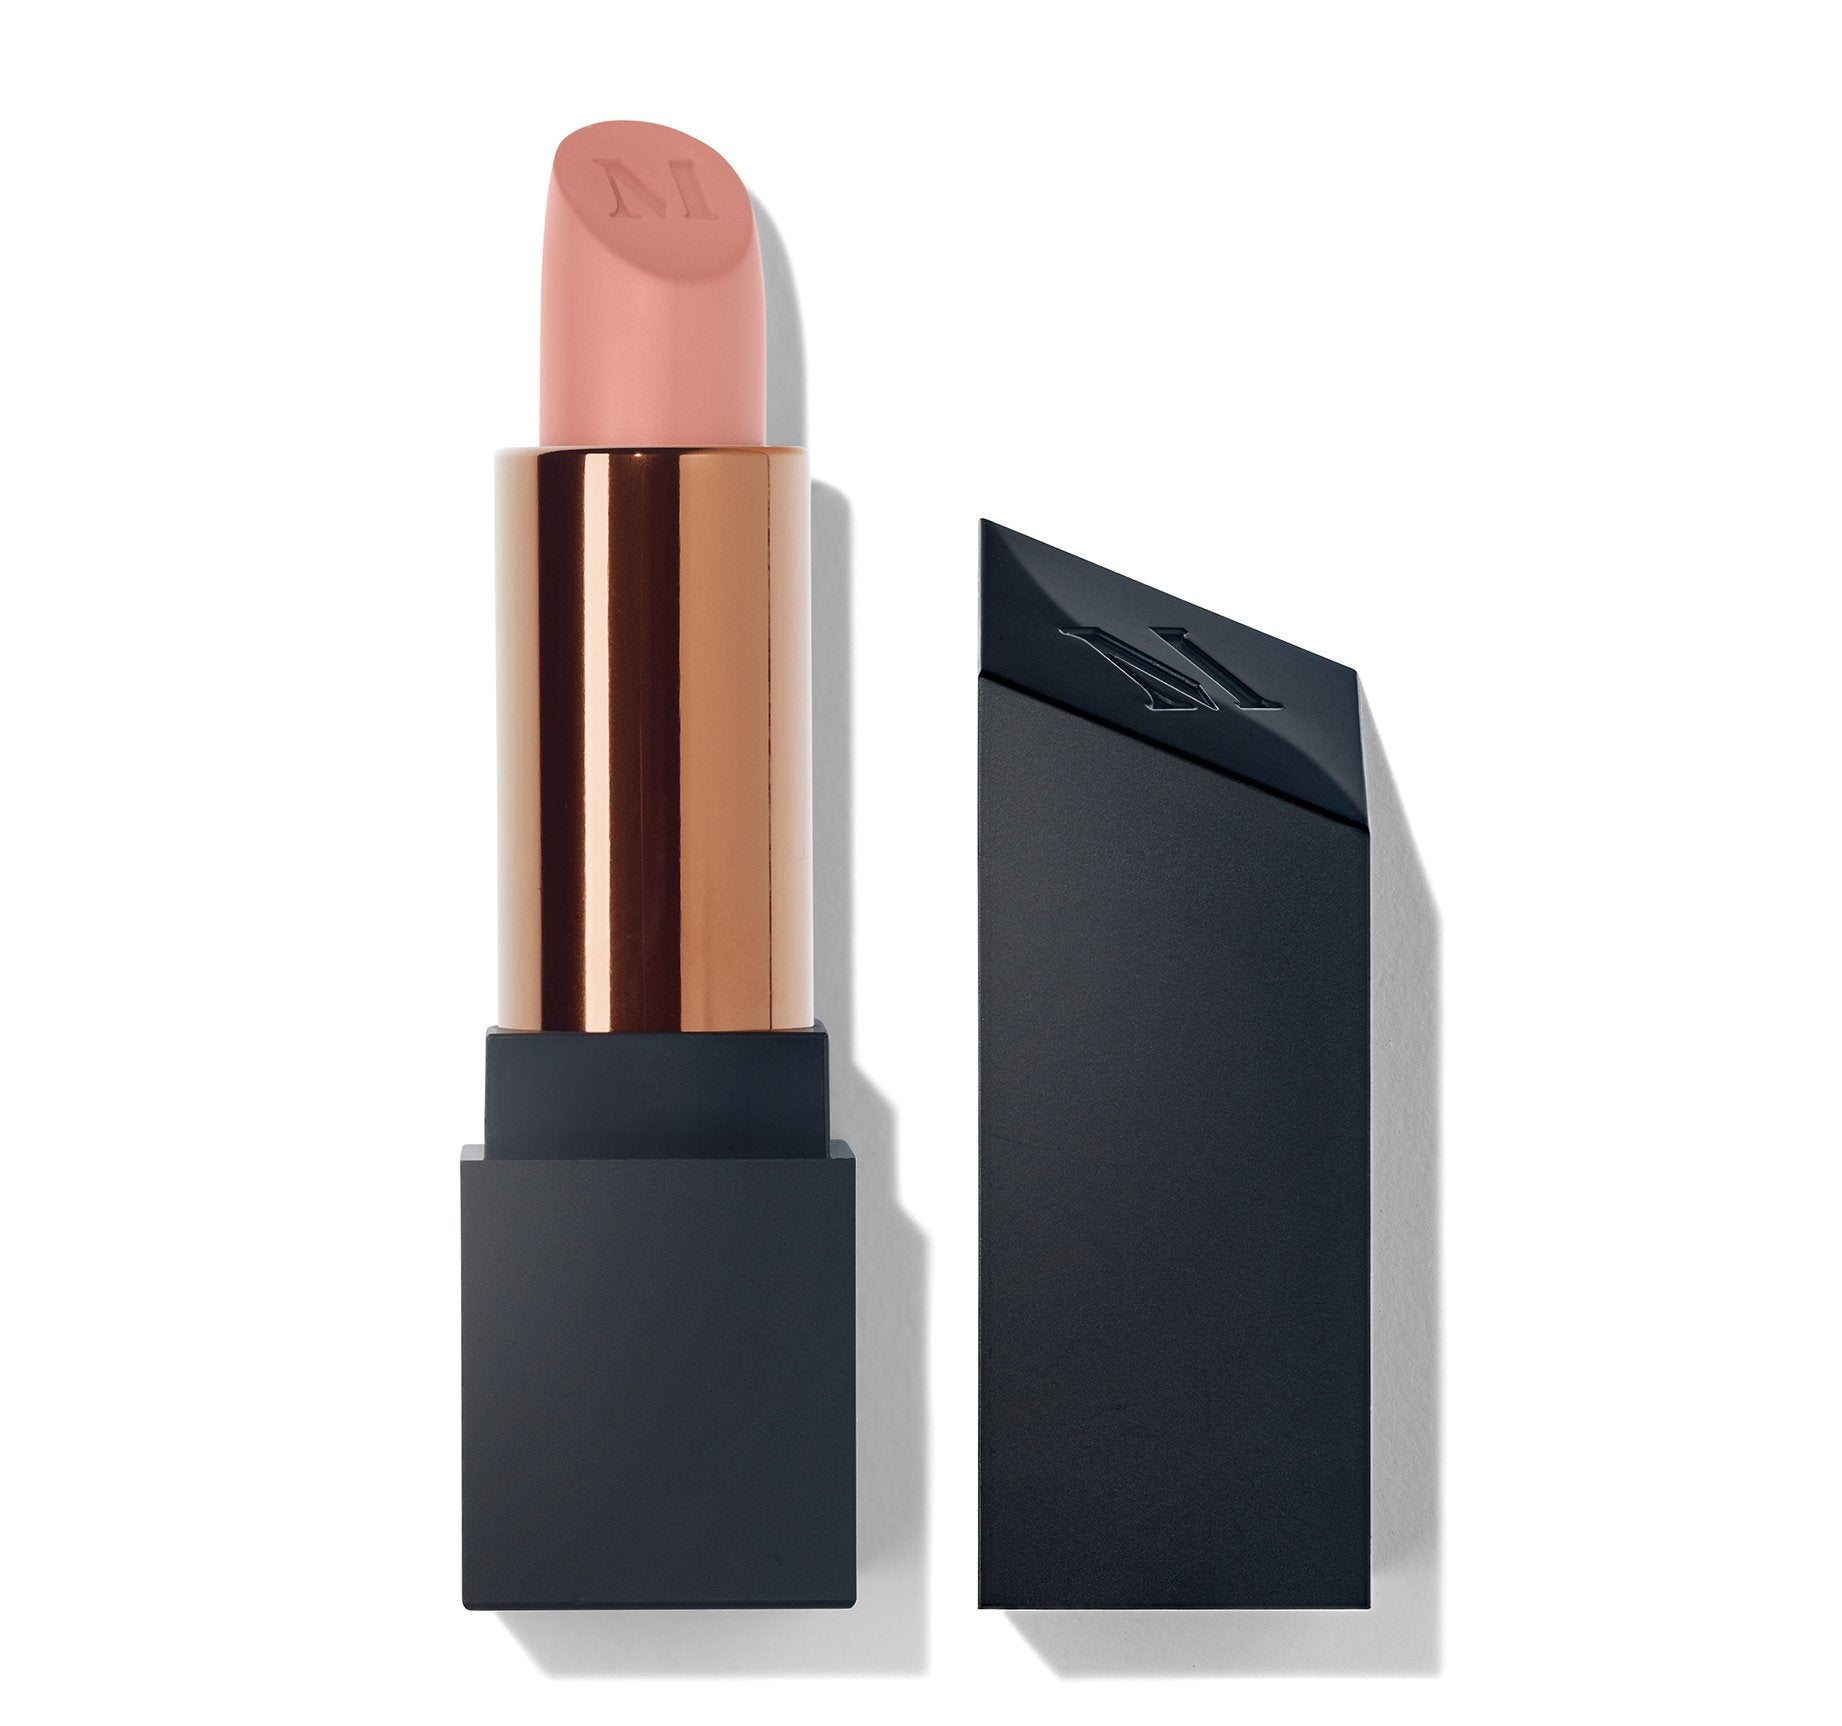 MEGA MATTE LIPSTICK - BARE ALL, view larger image